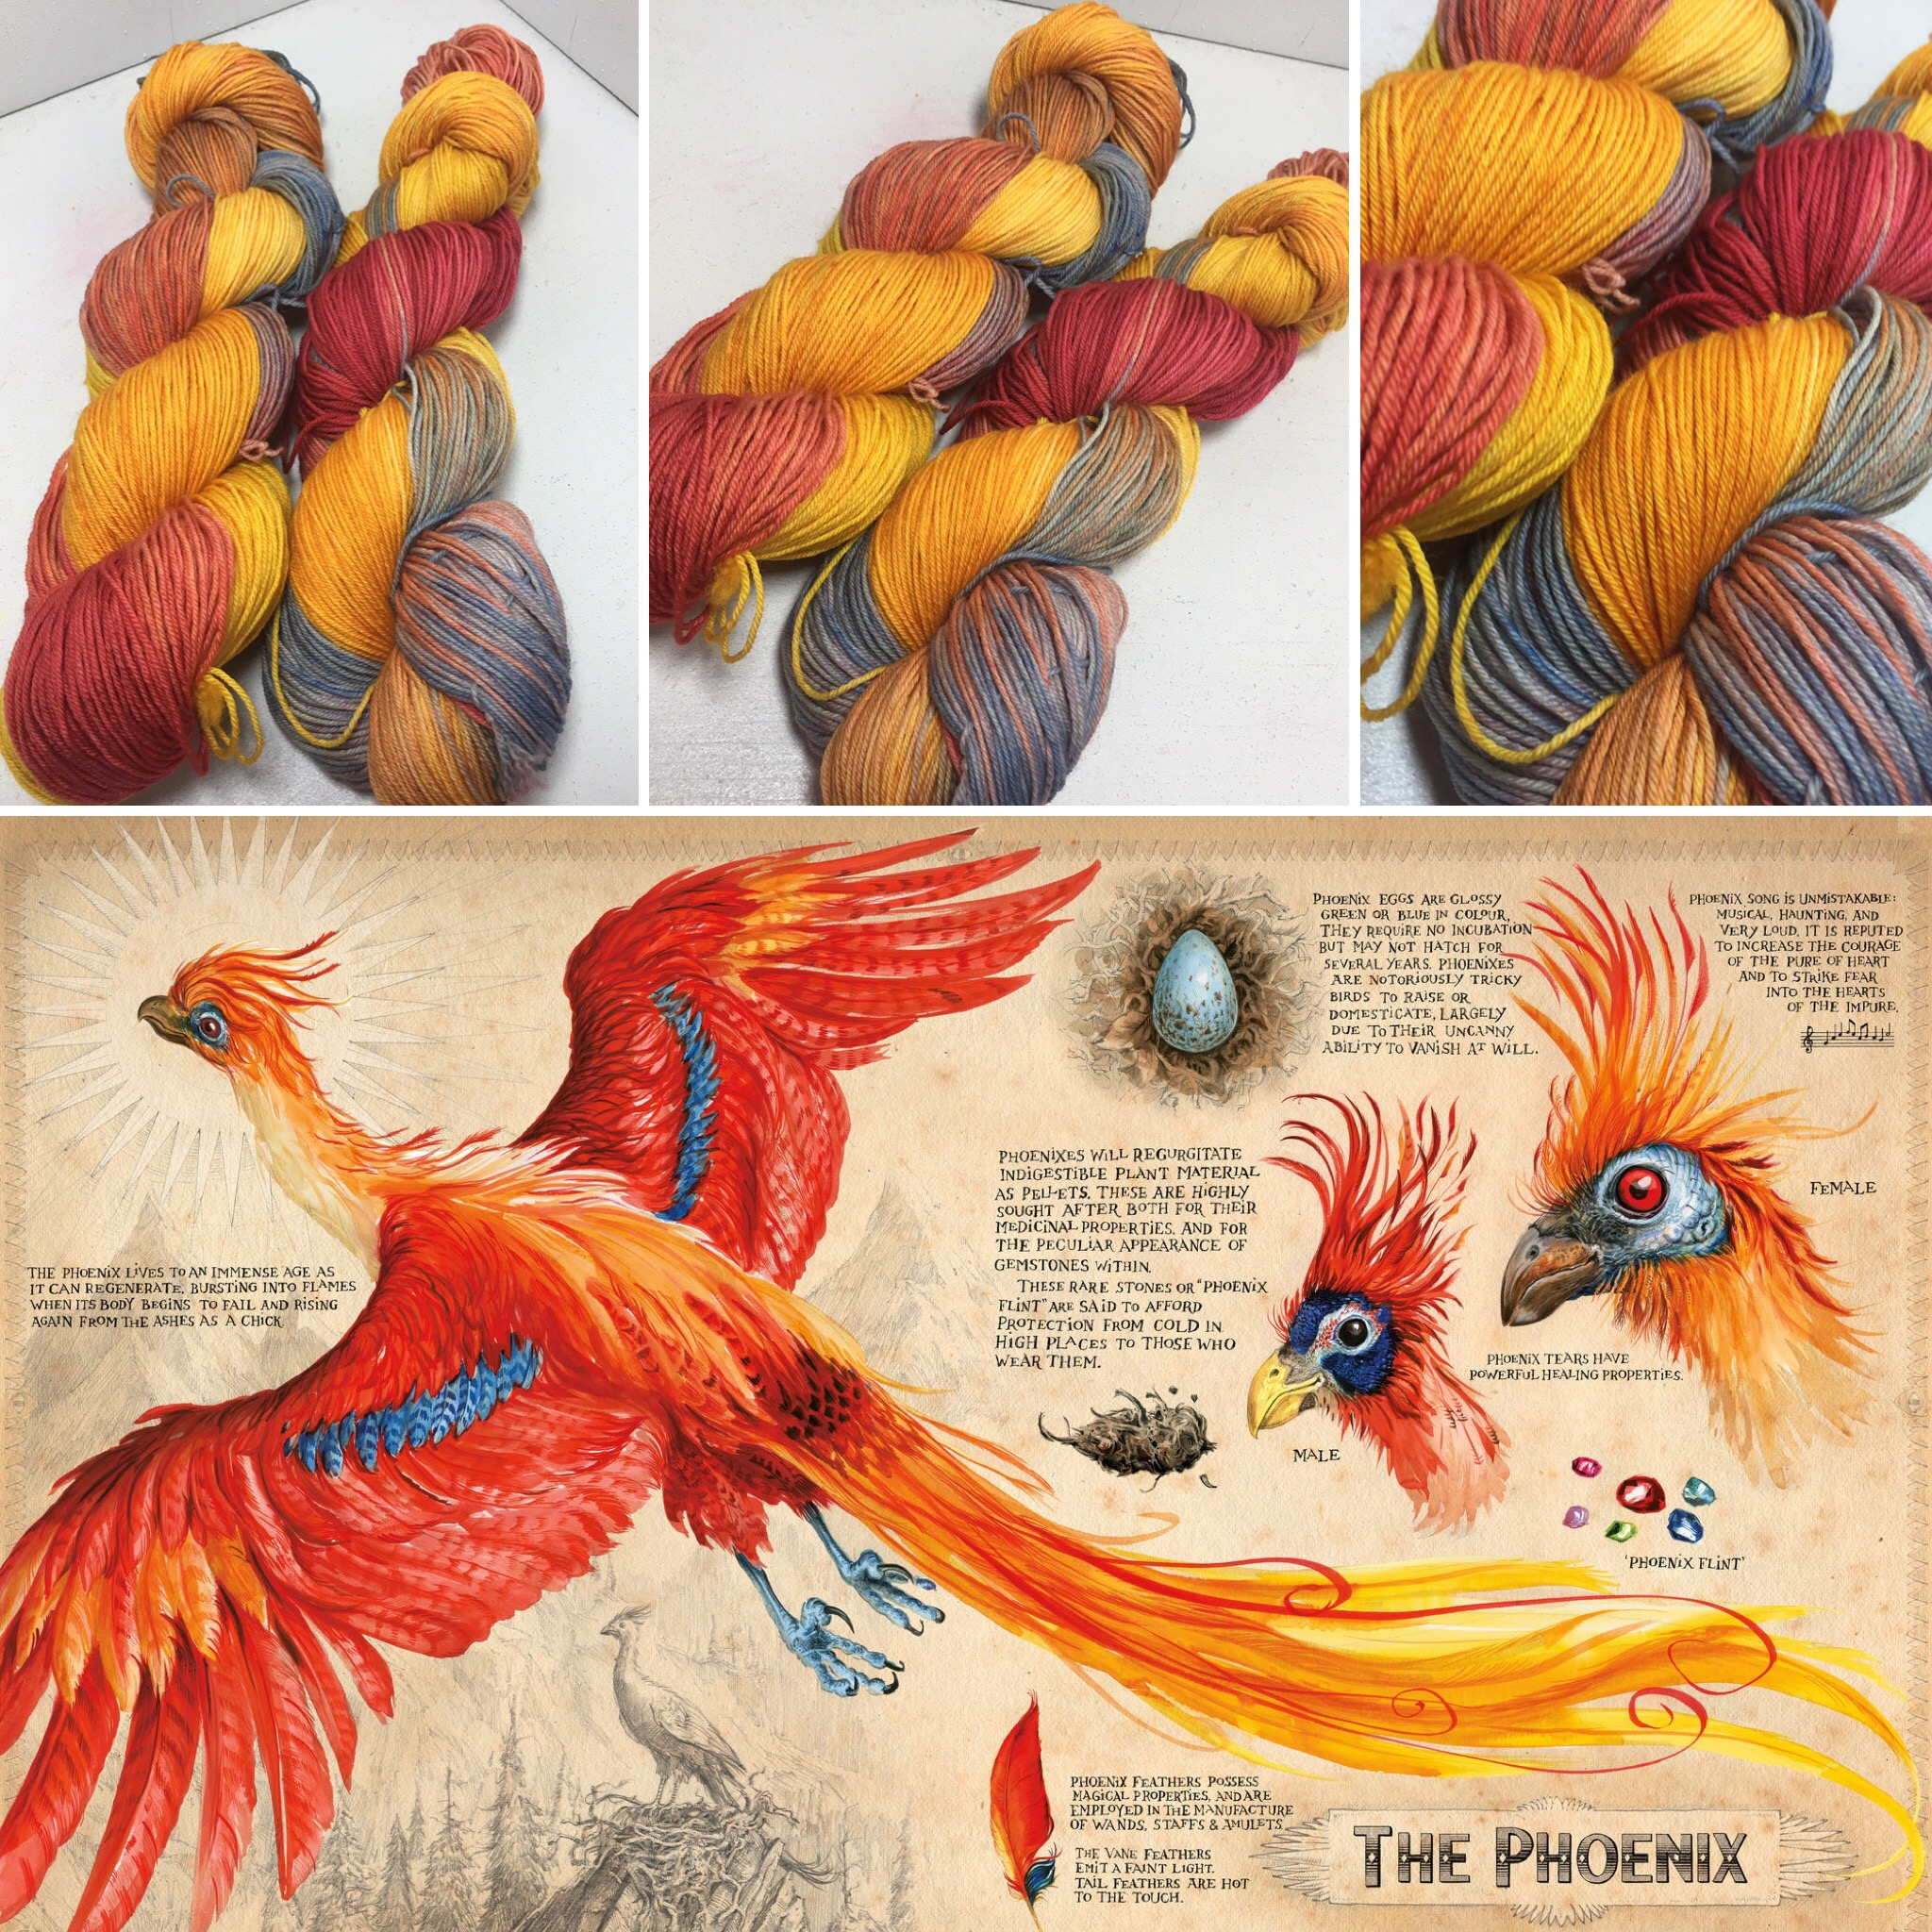 https://www.etsy.com/listing/476463111/fawkes-the-phoenix-100-superwash-merino